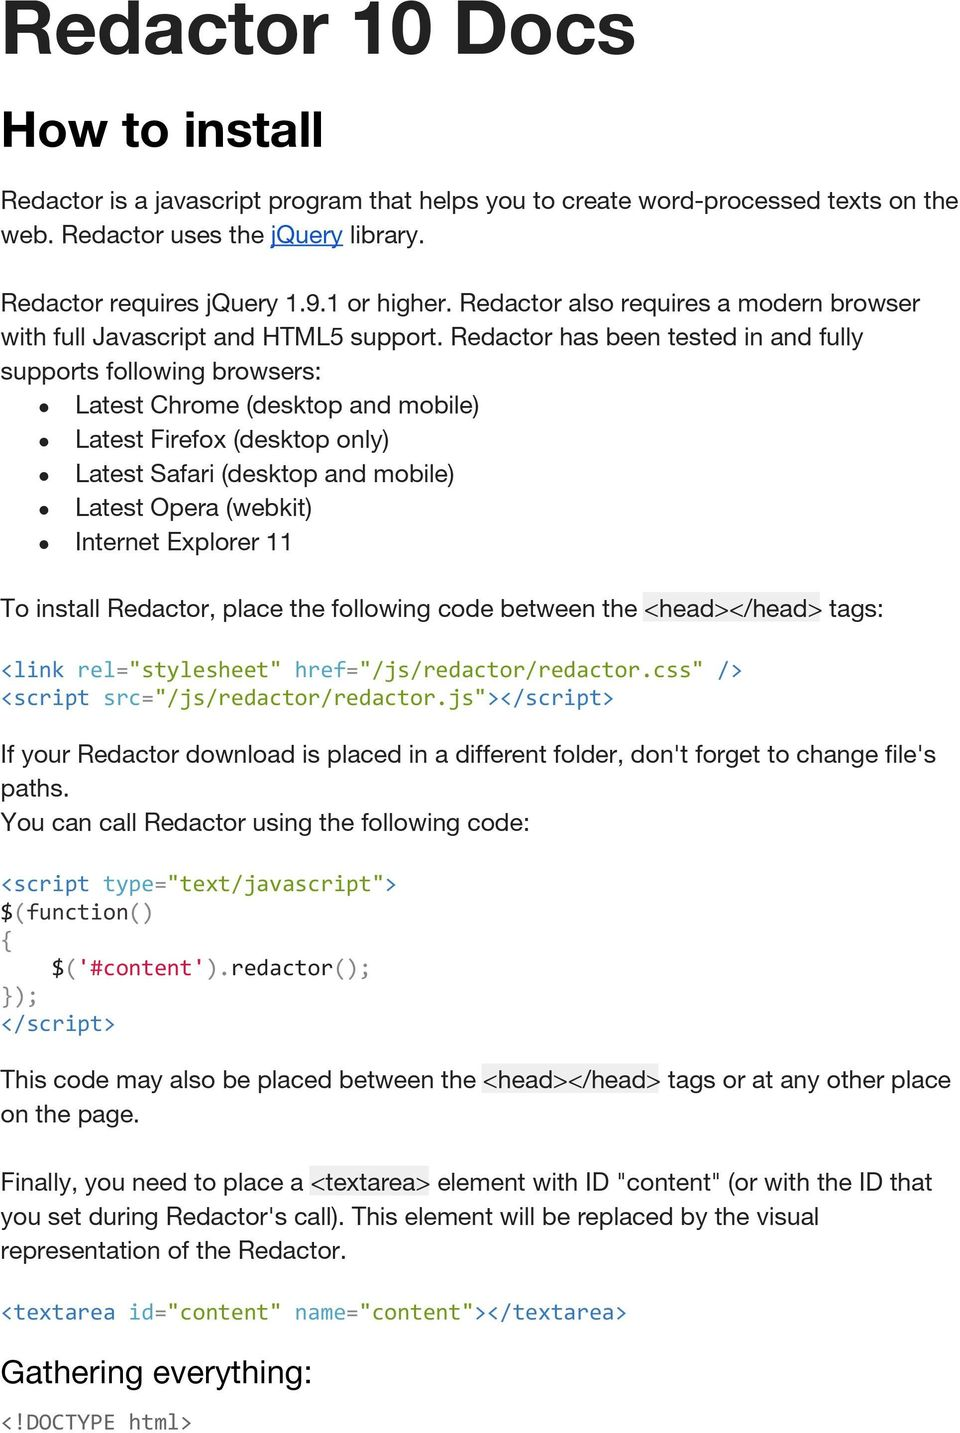 Redactor is a javascript program that helps you to create